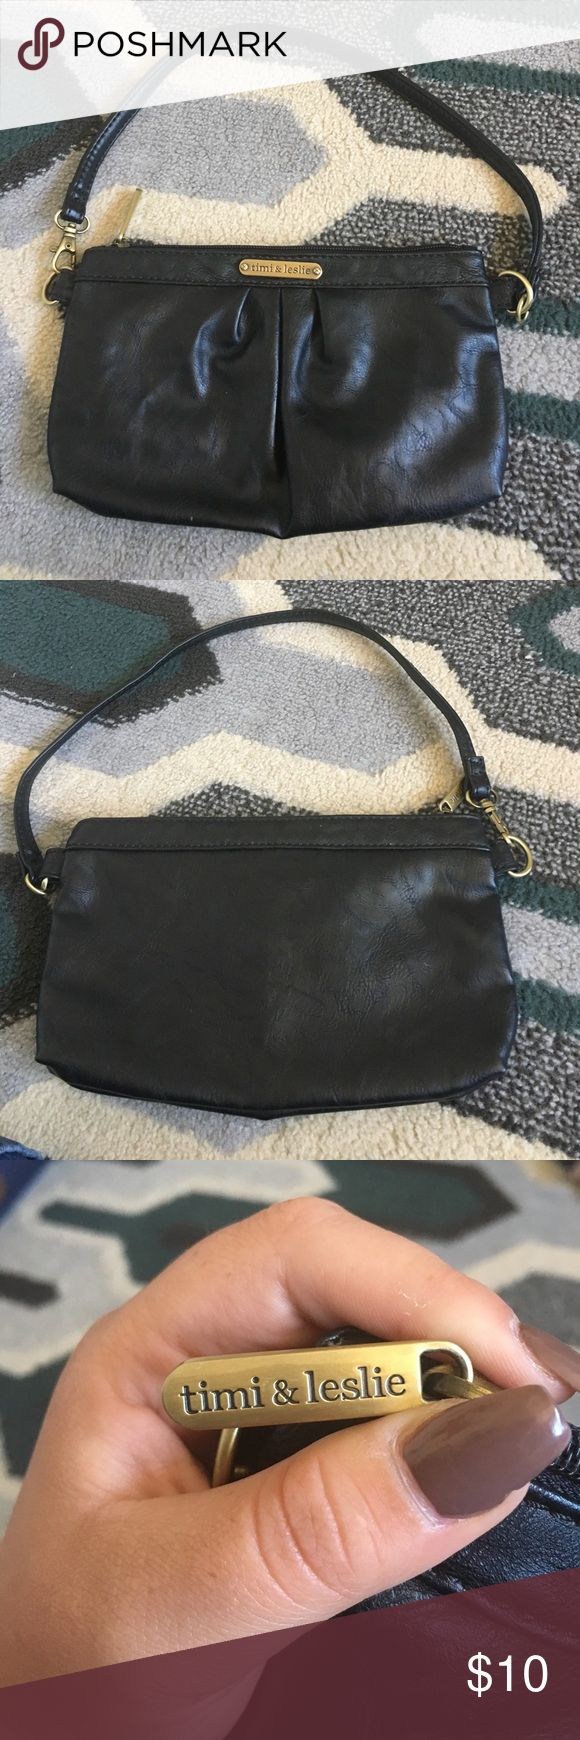 timi and leslie handbag clutch Brand new, in excellent condition. Timi & Leslie Bags